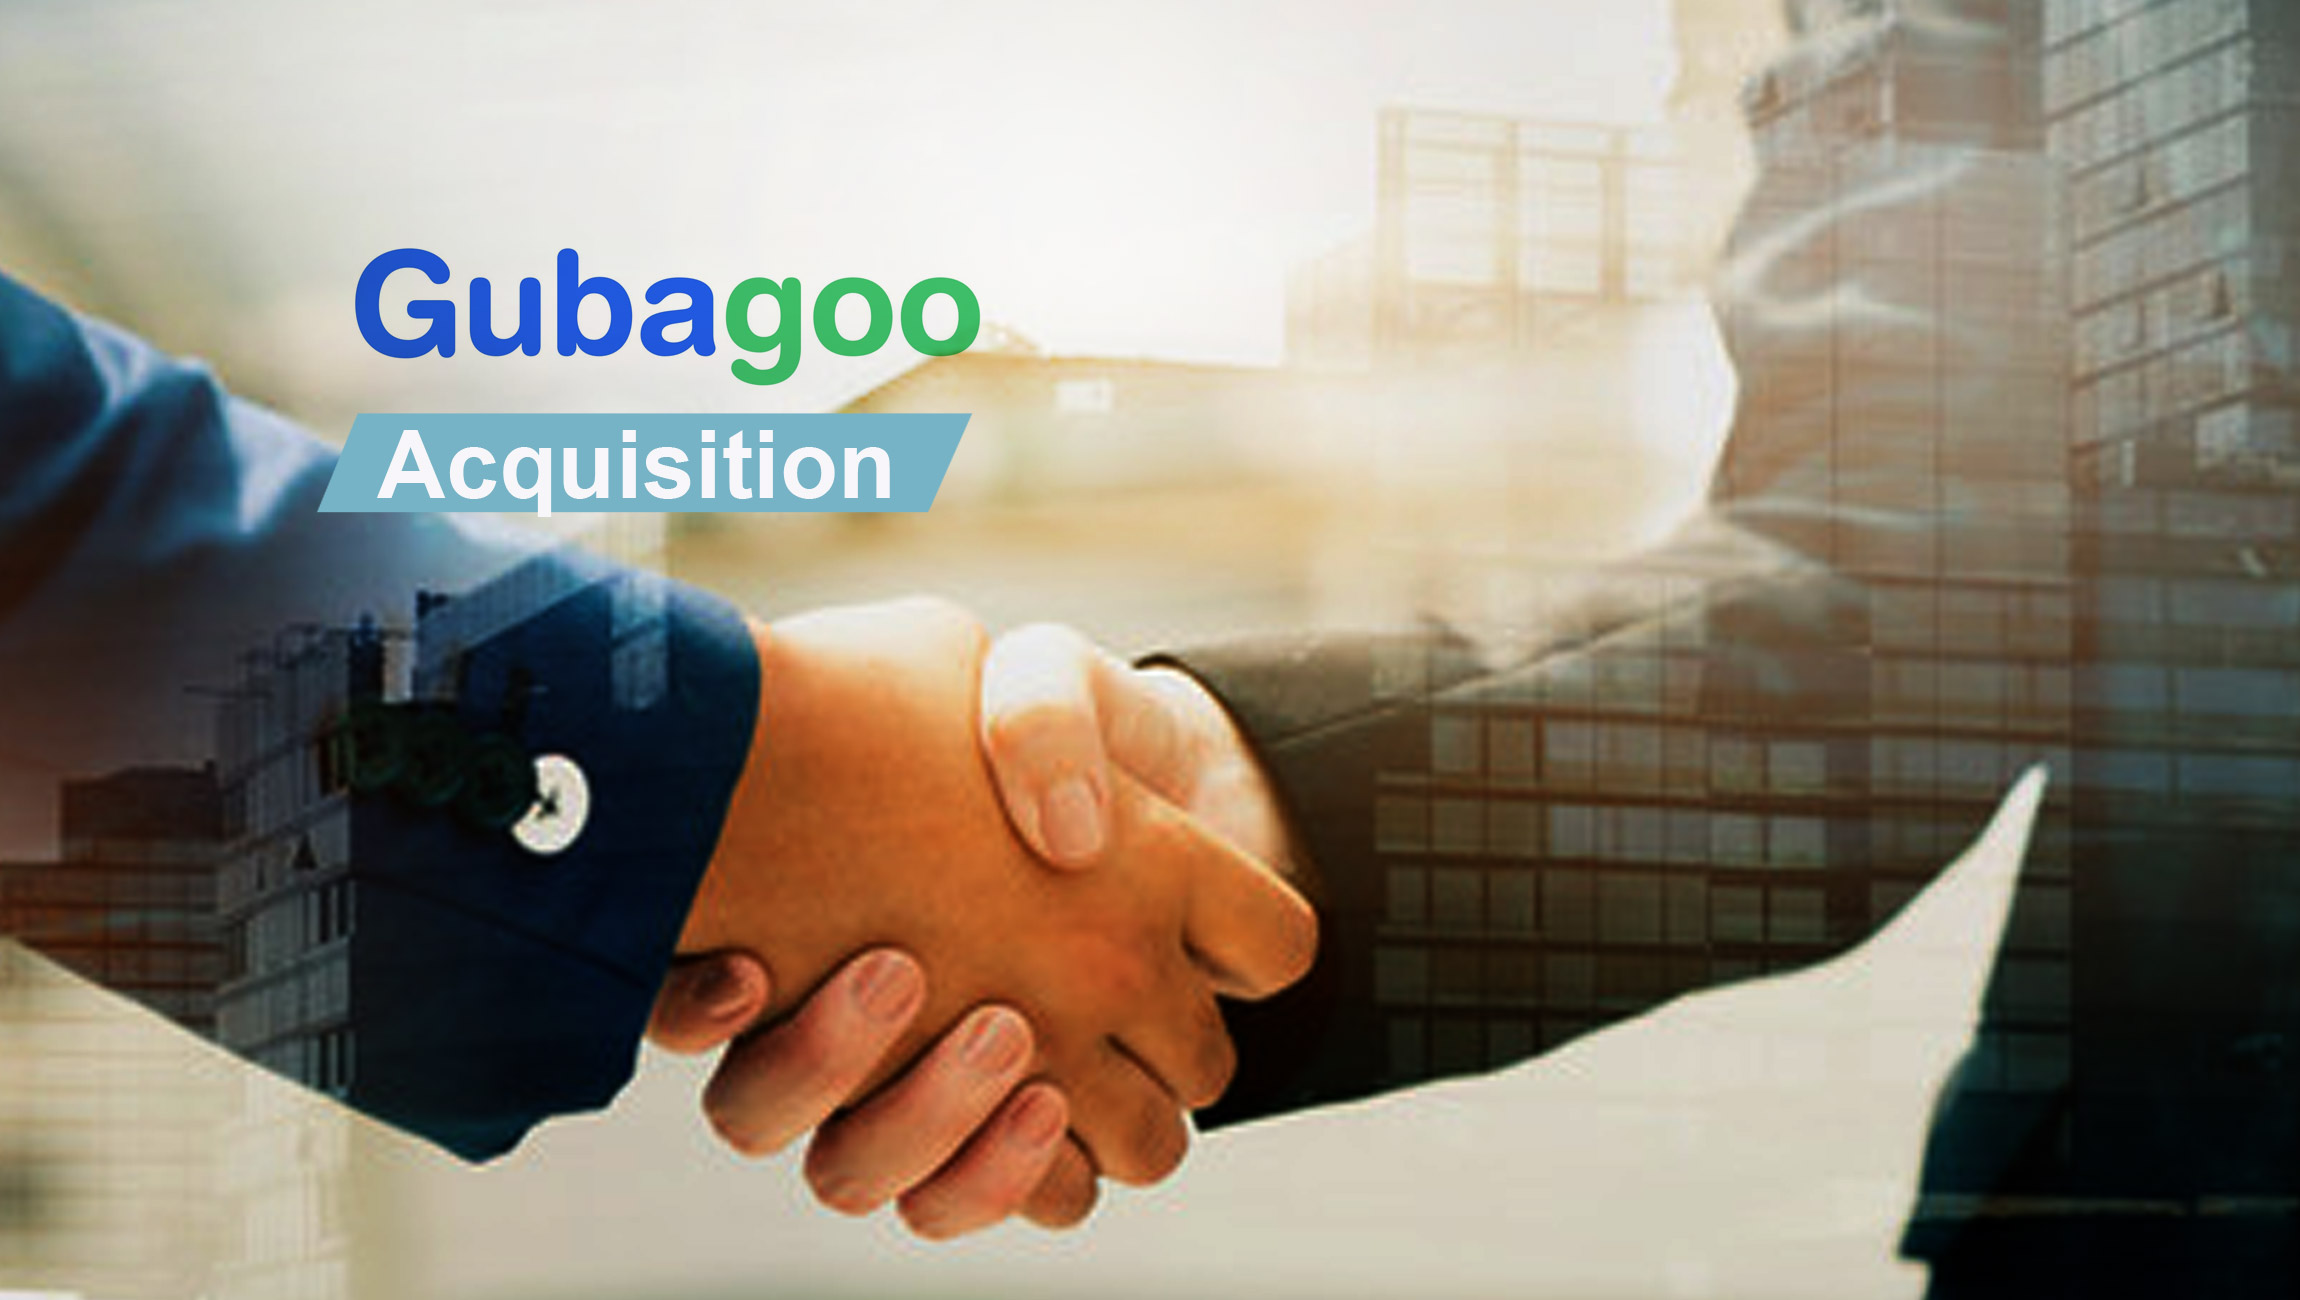 Reynolds Acquisition of Gubagoo Builds on Company's Retail Anywhere Platform